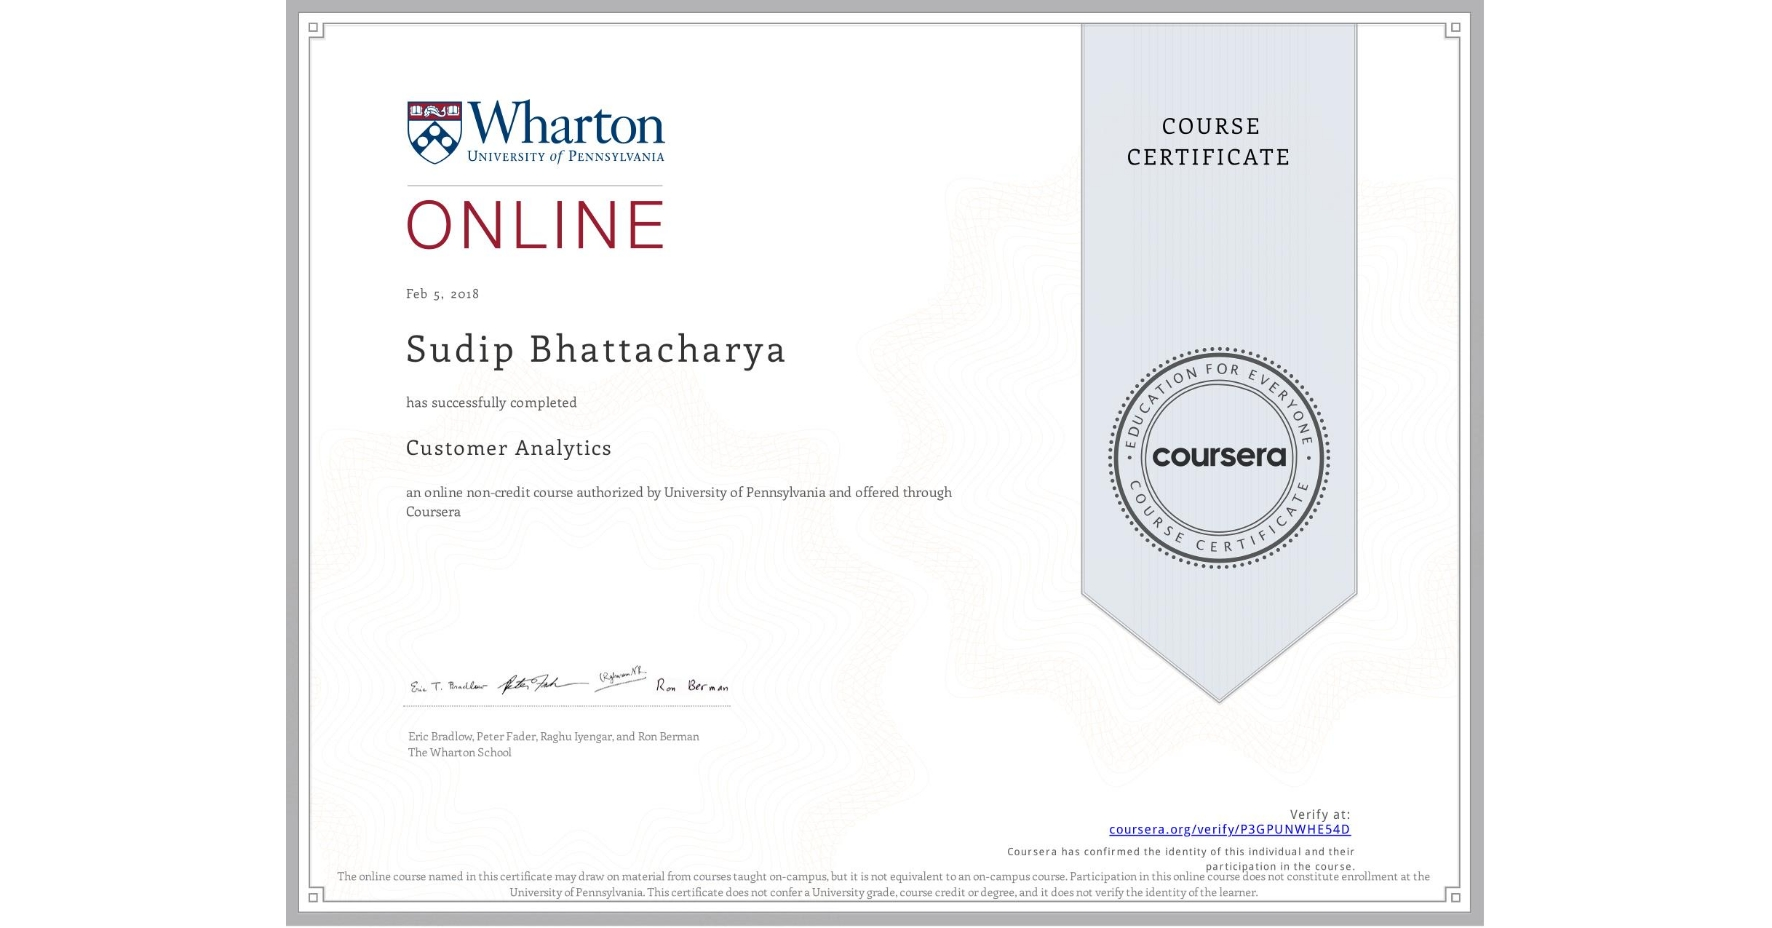 View certificate for Sudip Bhattacharya, Customer Analytics, an online non-credit course authorized by University of Pennsylvania and offered through Coursera